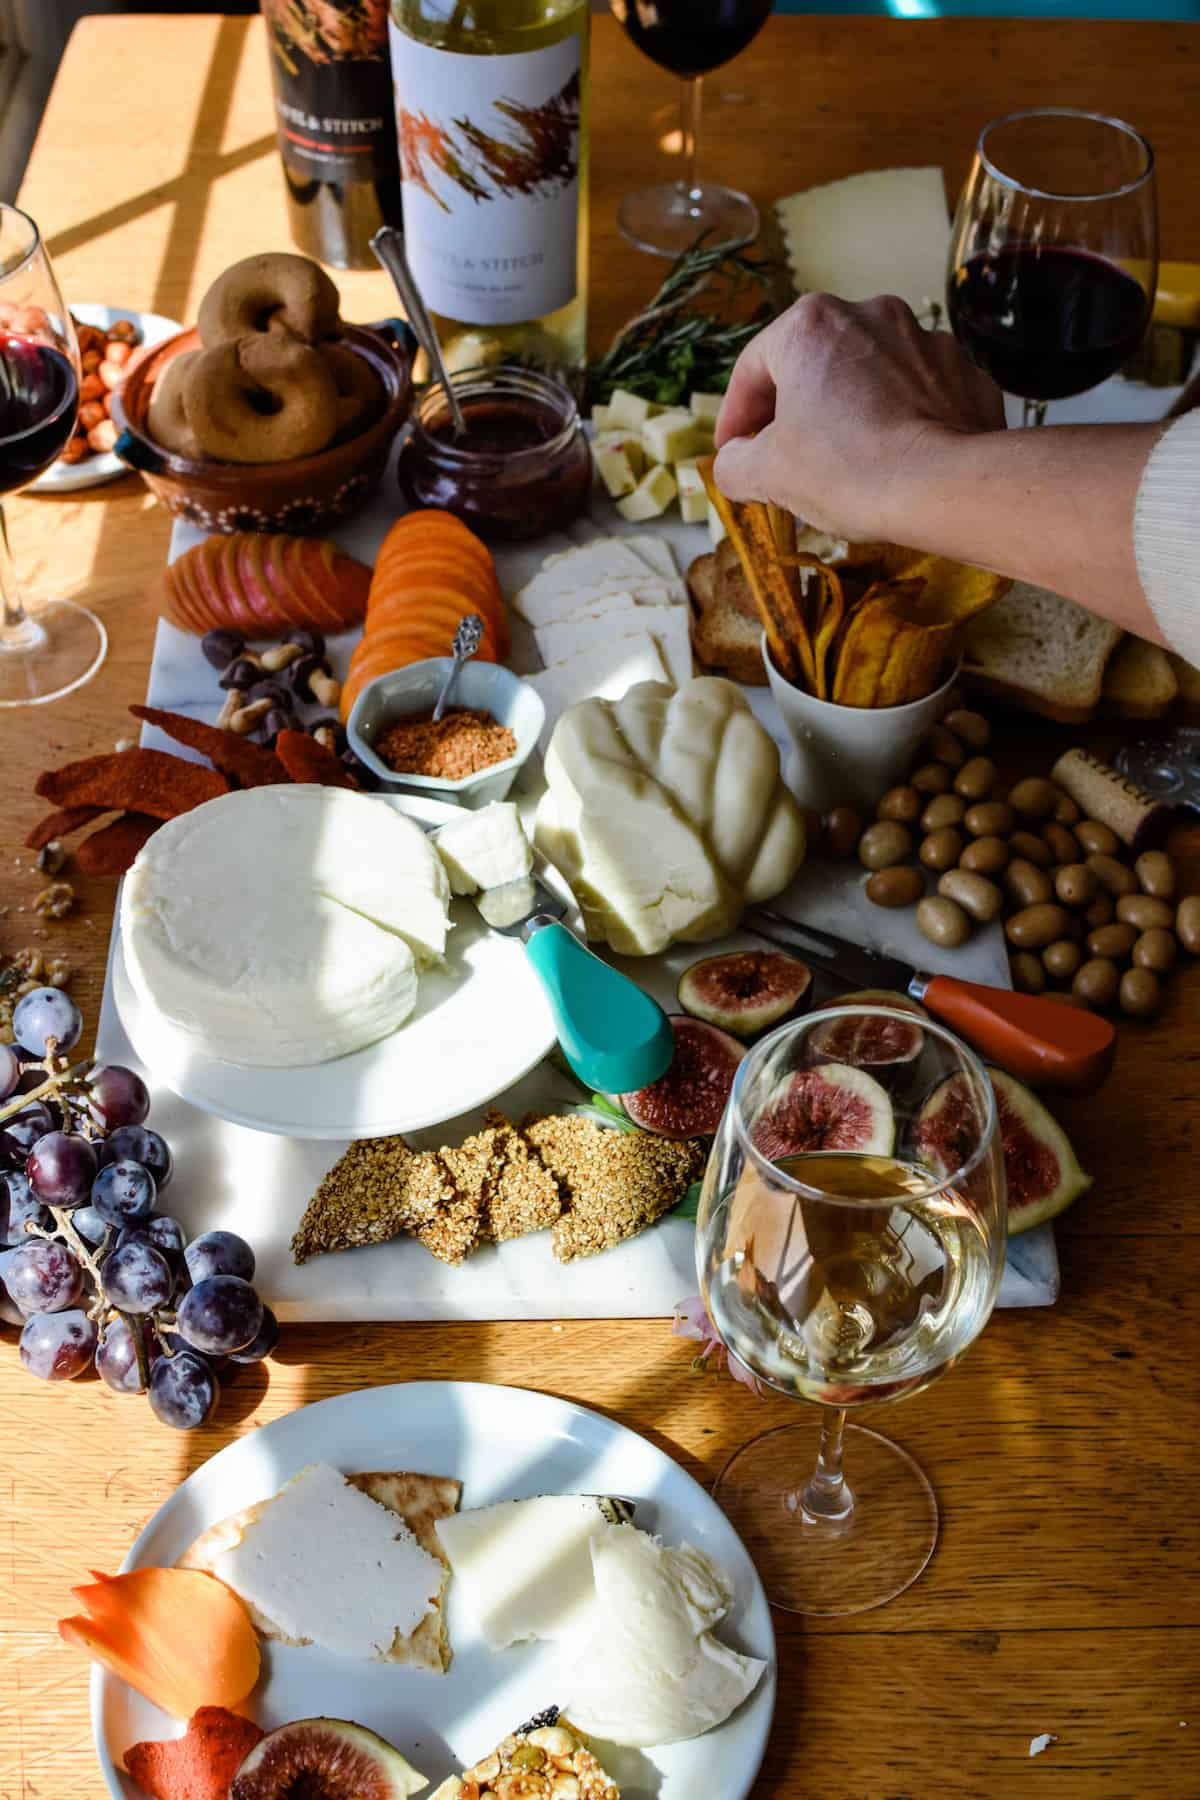 A white plate filled with cheese and snacks and a glass of white wine sitting on a wooden table next to a cheese board filled with cheese.